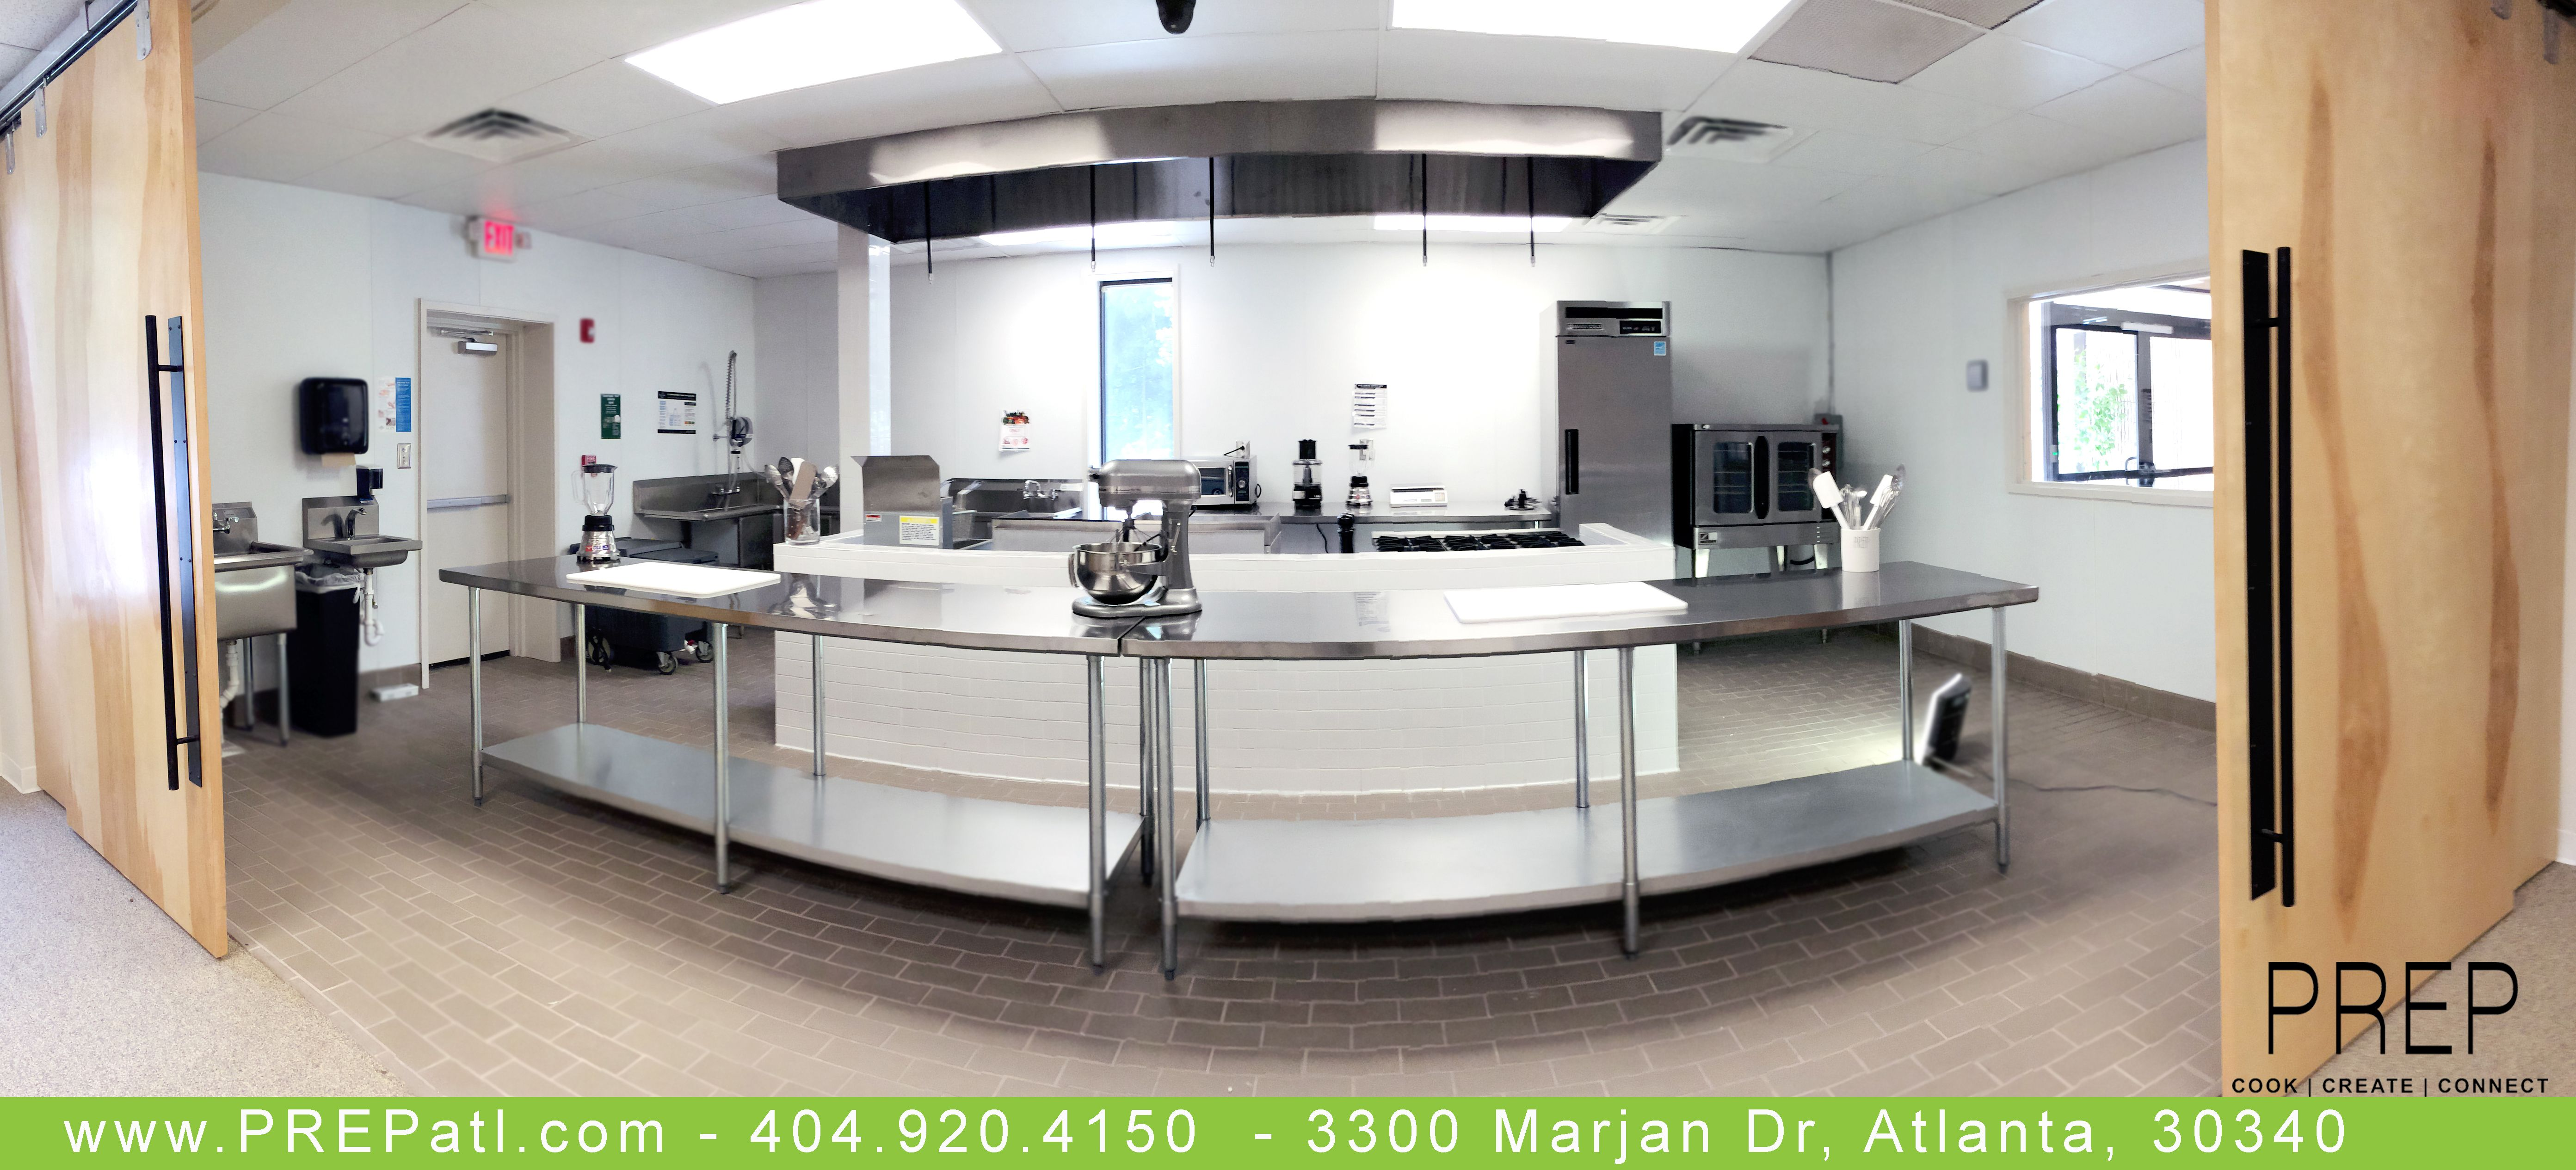 Shared Kitchen In Atlanta By Prep Www Prepatl Com 404 920 4150 Sharedkitchen Foodtruck Whatscooking Commercial Kitchen For Rent Commercial Kitchen Home